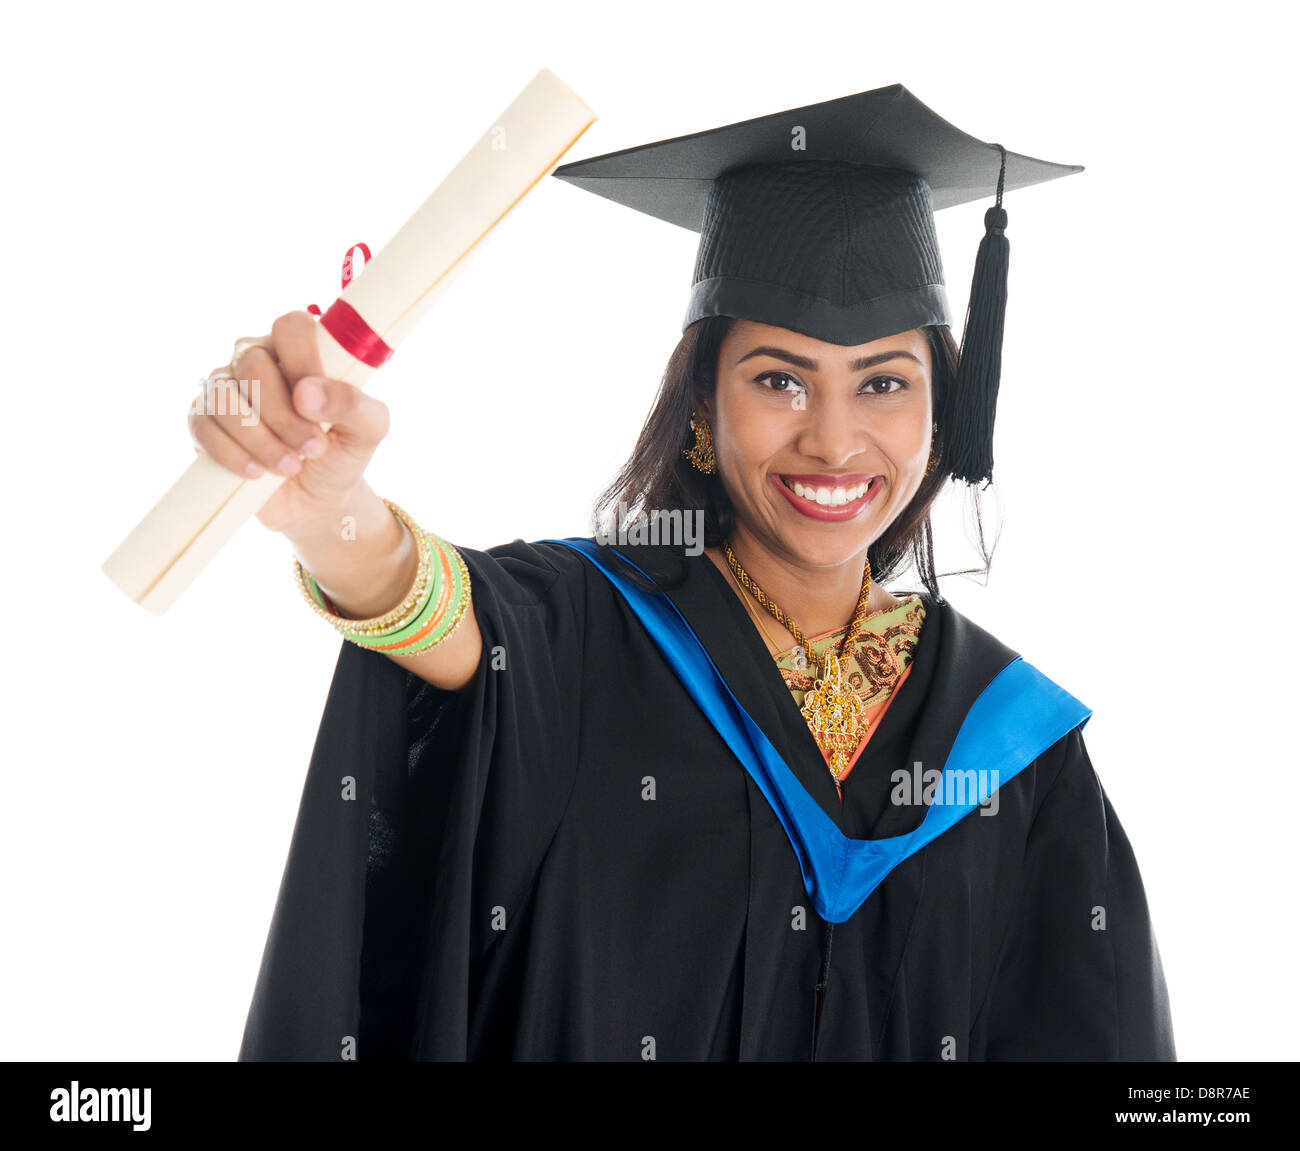 a9e54f1035 Happy Indian graduate student in graduation gown and cap showing her  diploma certificate. Portrait of